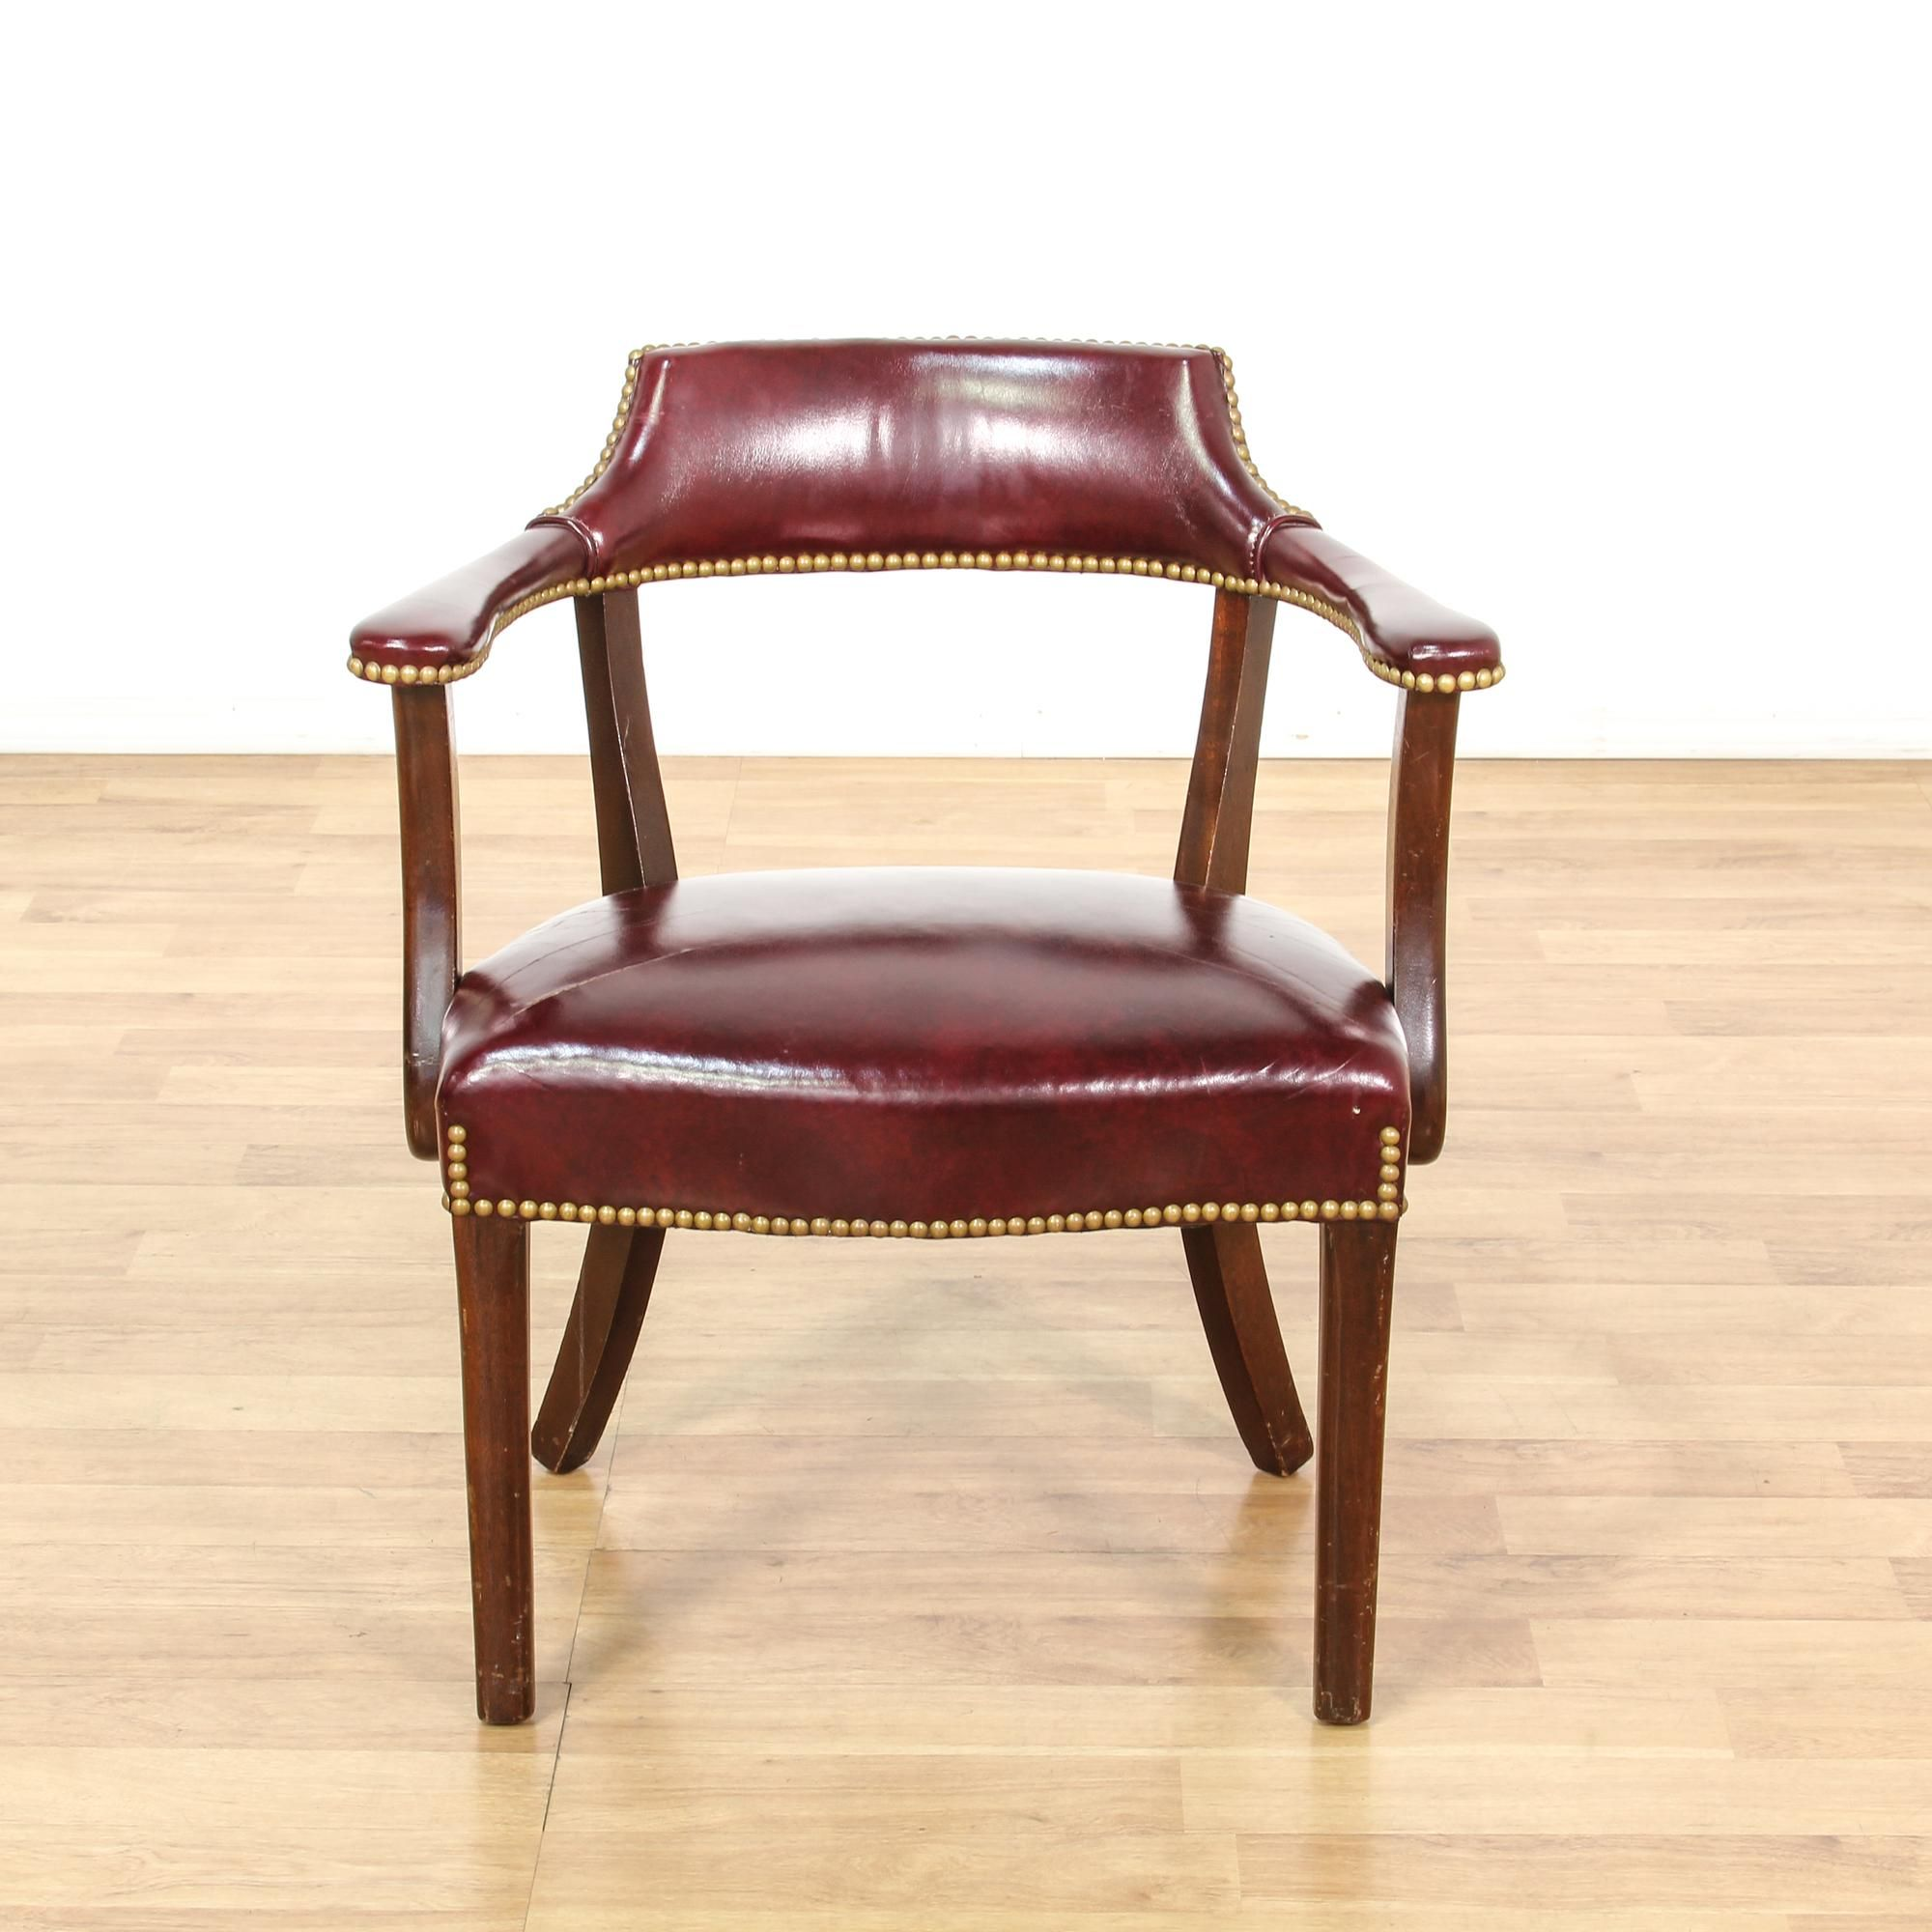 This captain s chair is upholstered in a durable faux leather